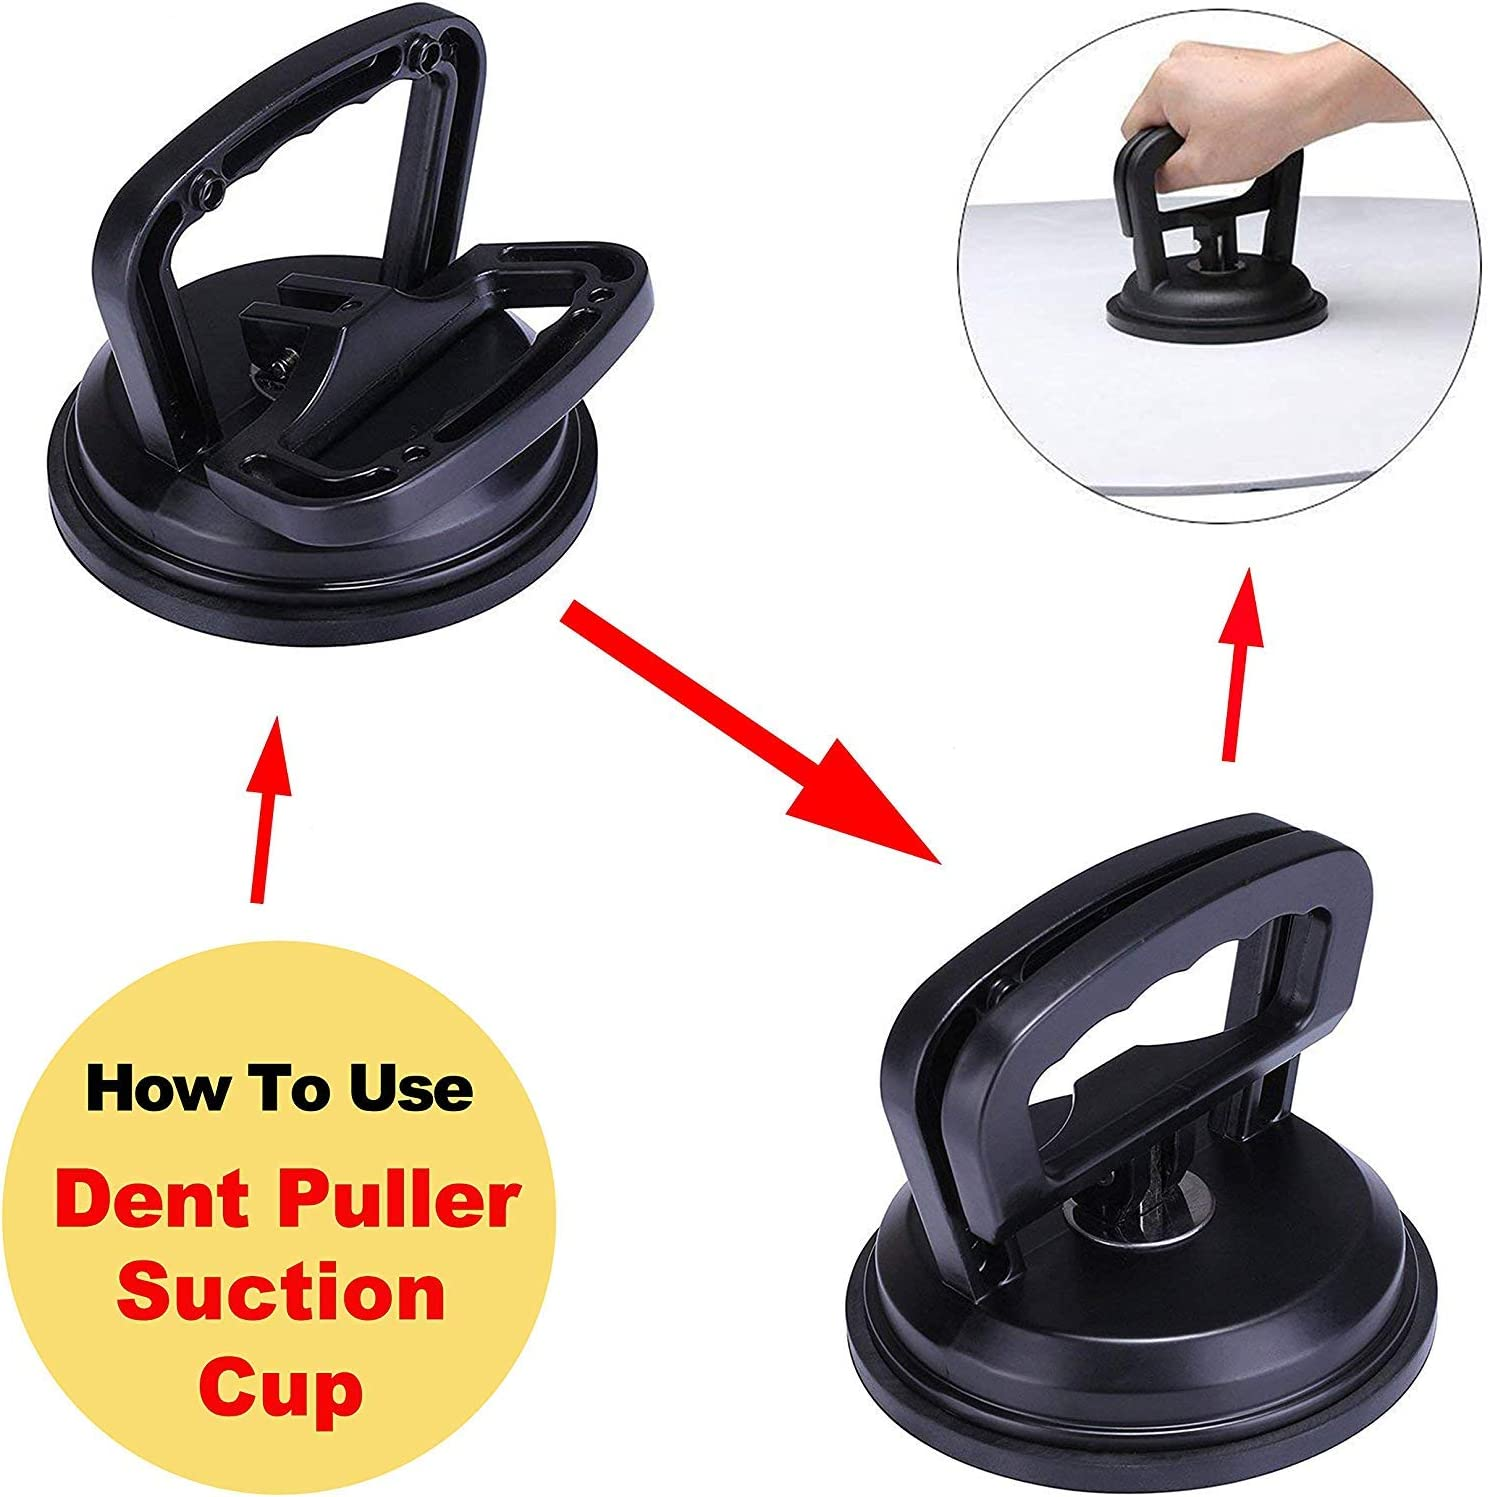 Car Dent Puller Handle Lifter Dent Remover for Car Dent Repair Black Aluminum Suction Cup Dent Puller Heavy Duty Glass Lifting and Objects Moving